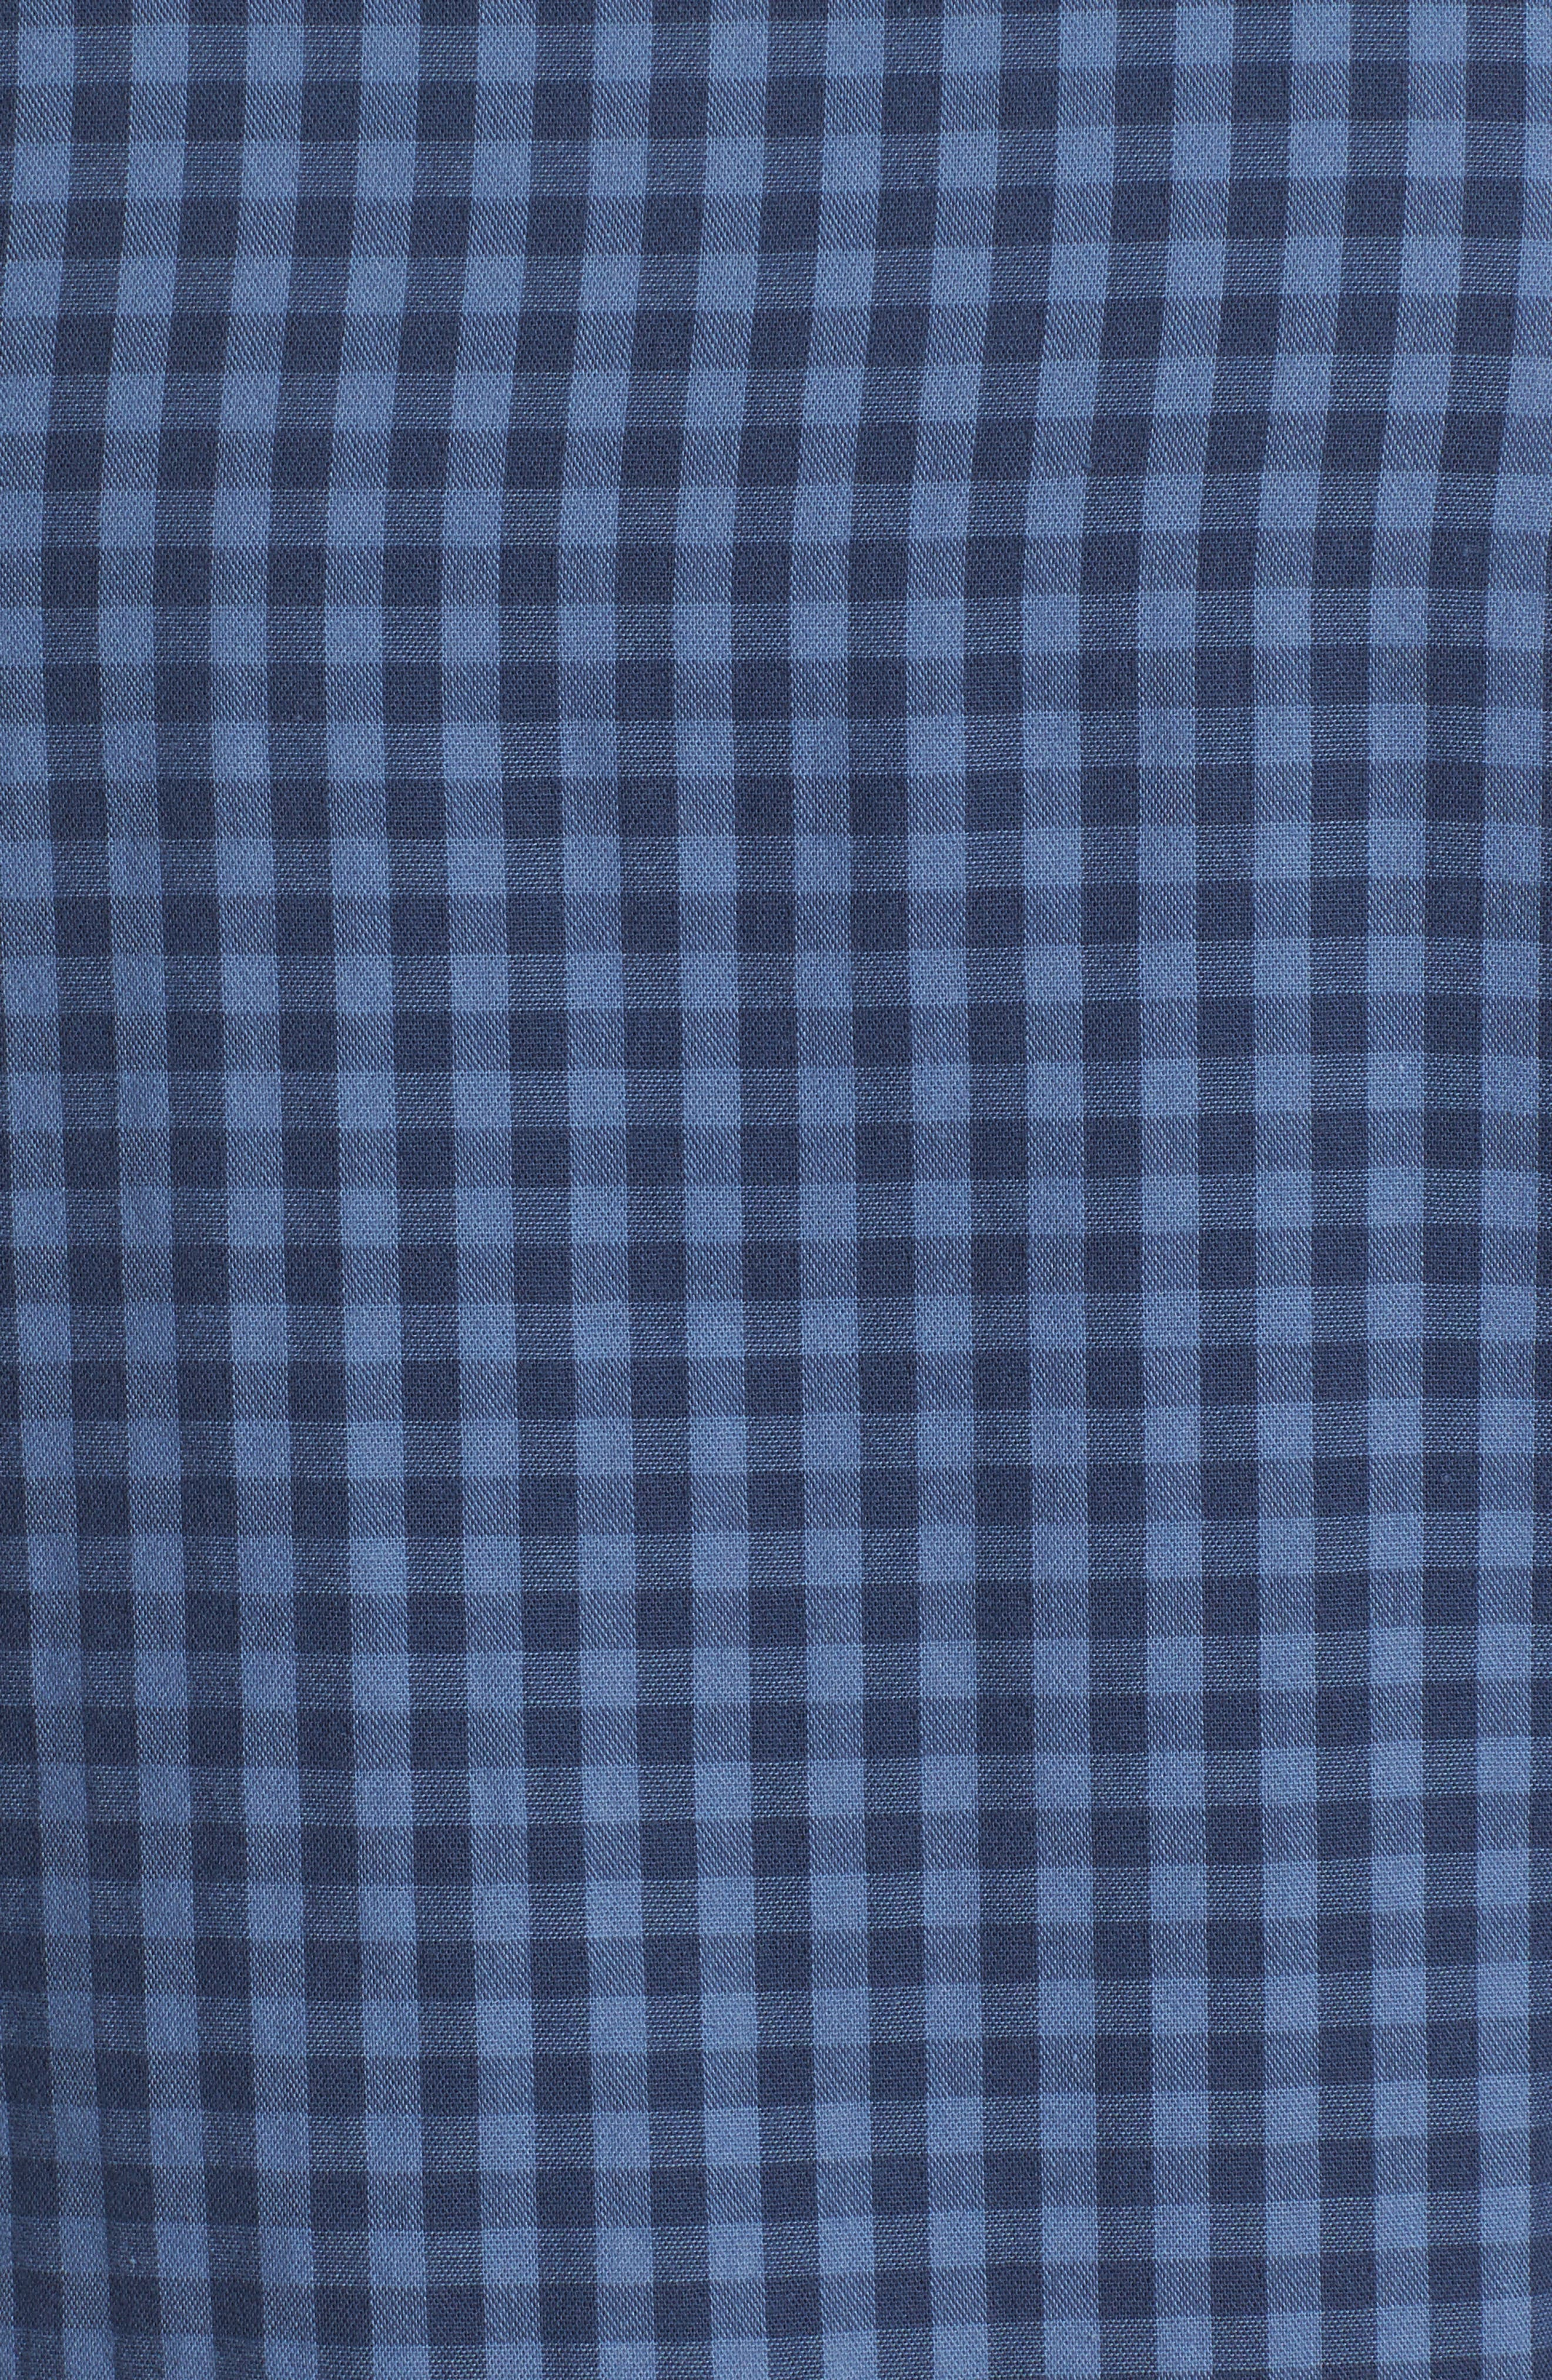 Trim Fit Duofold Check Sport Shirt,                             Alternate thumbnail 5, color,                             Blue Canal Navy Plaid Duofold